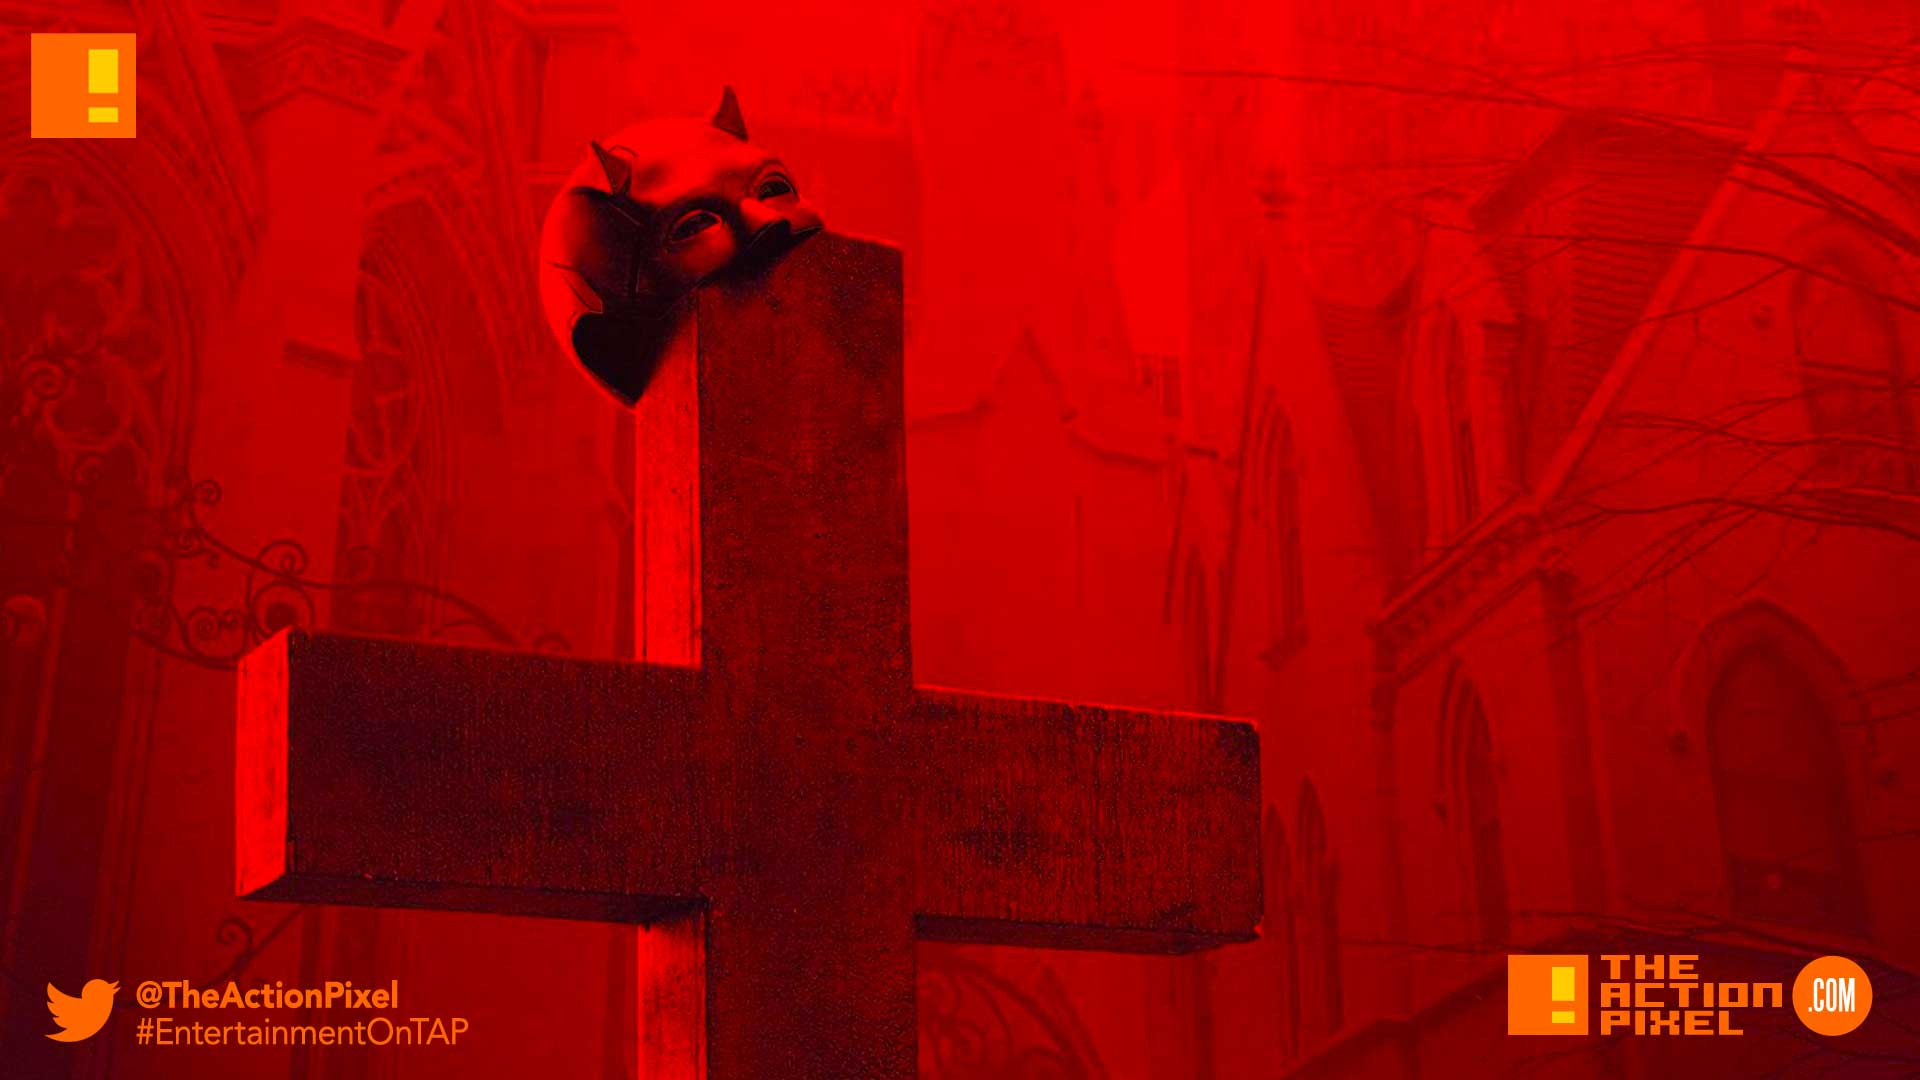 dardevil season 3, daredevil, charlie cox, matt murdock, teaser, catholic church, confessional, priest, abuse, child abuse, church, confession booth, teaser, daredevil, netflix, marvel comics, marvel,